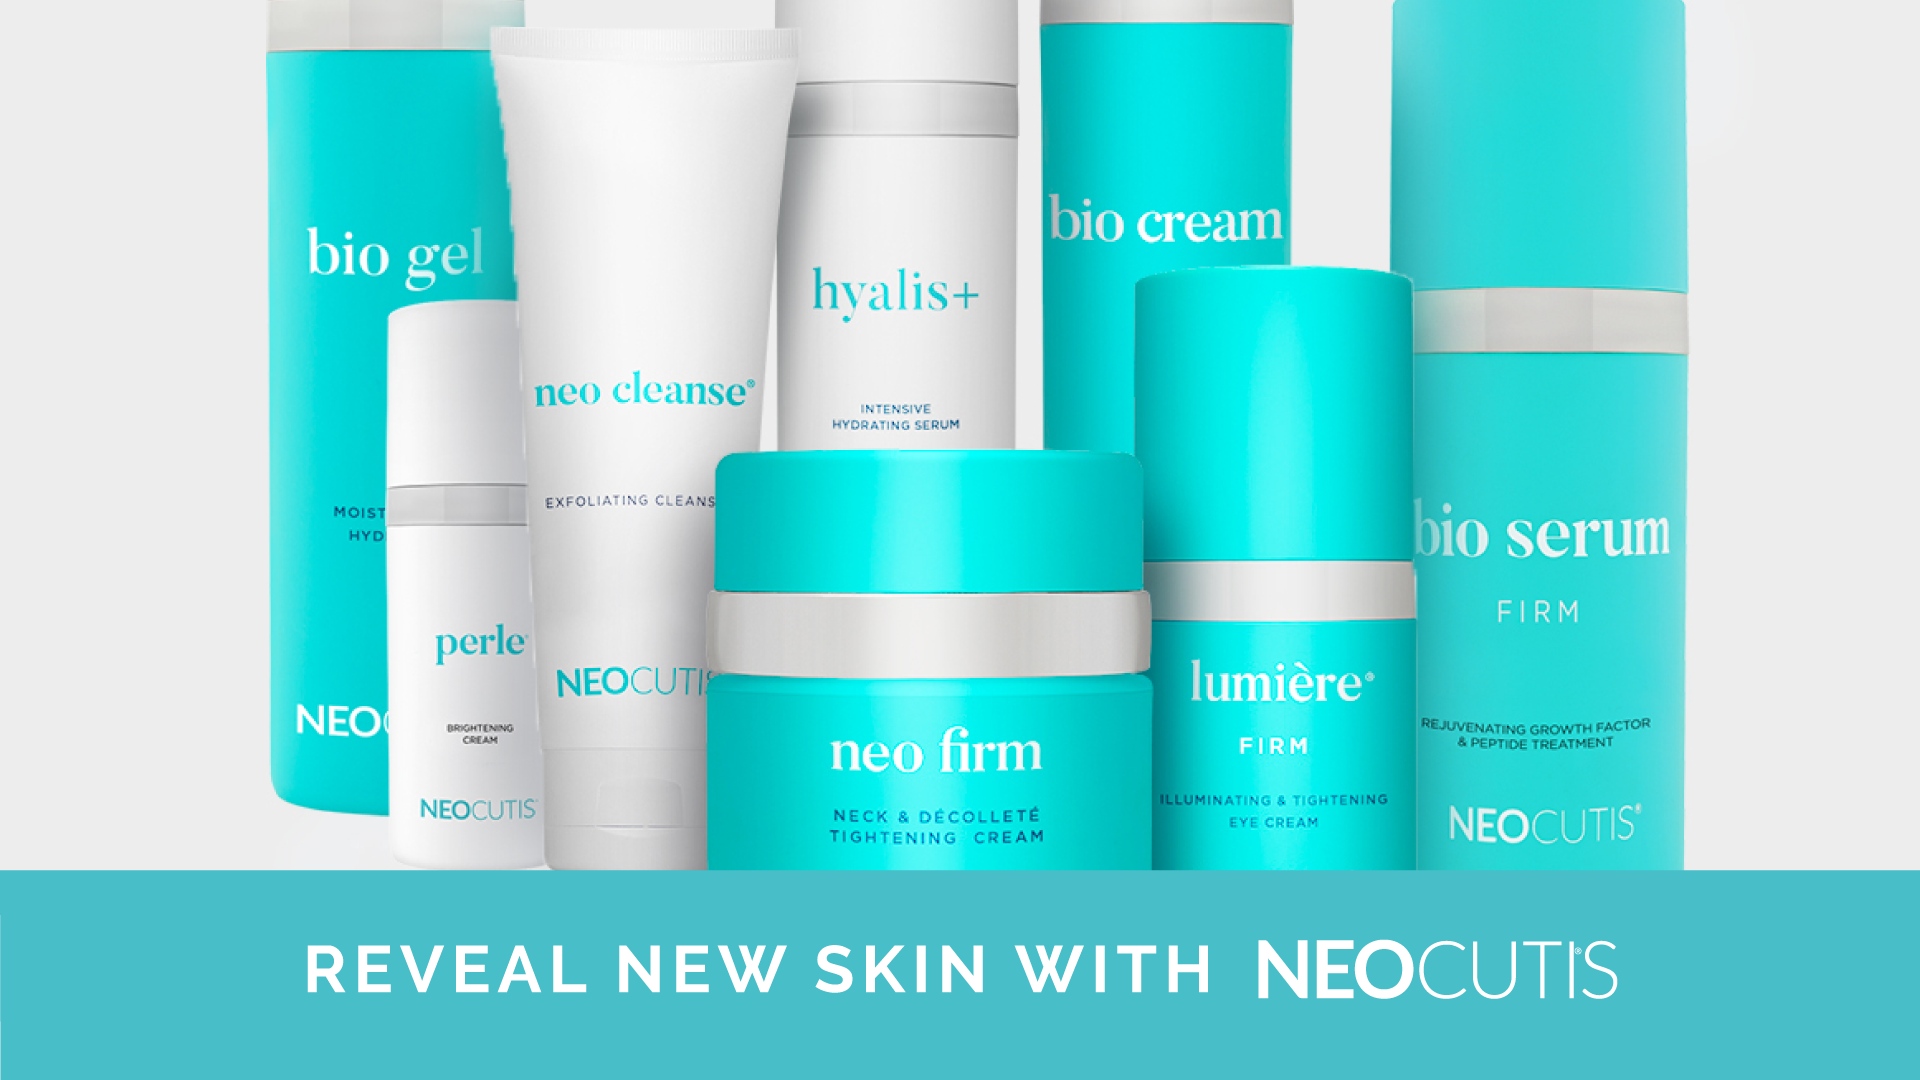 Reveal new skin with Neocutis